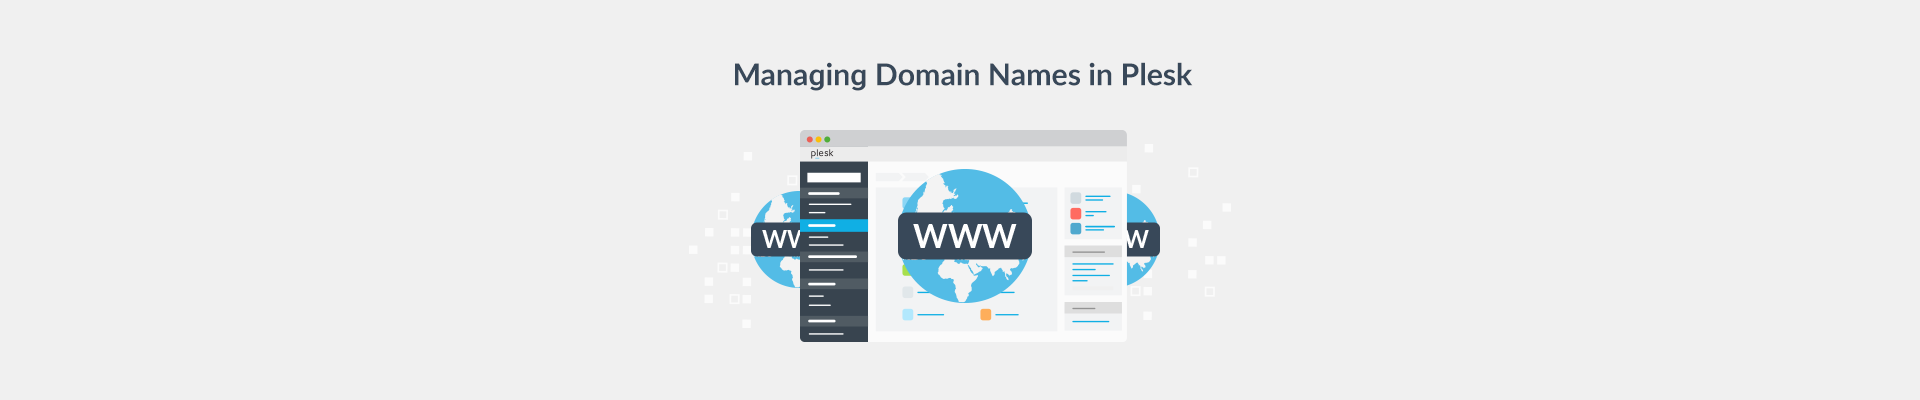 Managing Domain Names in Plesk